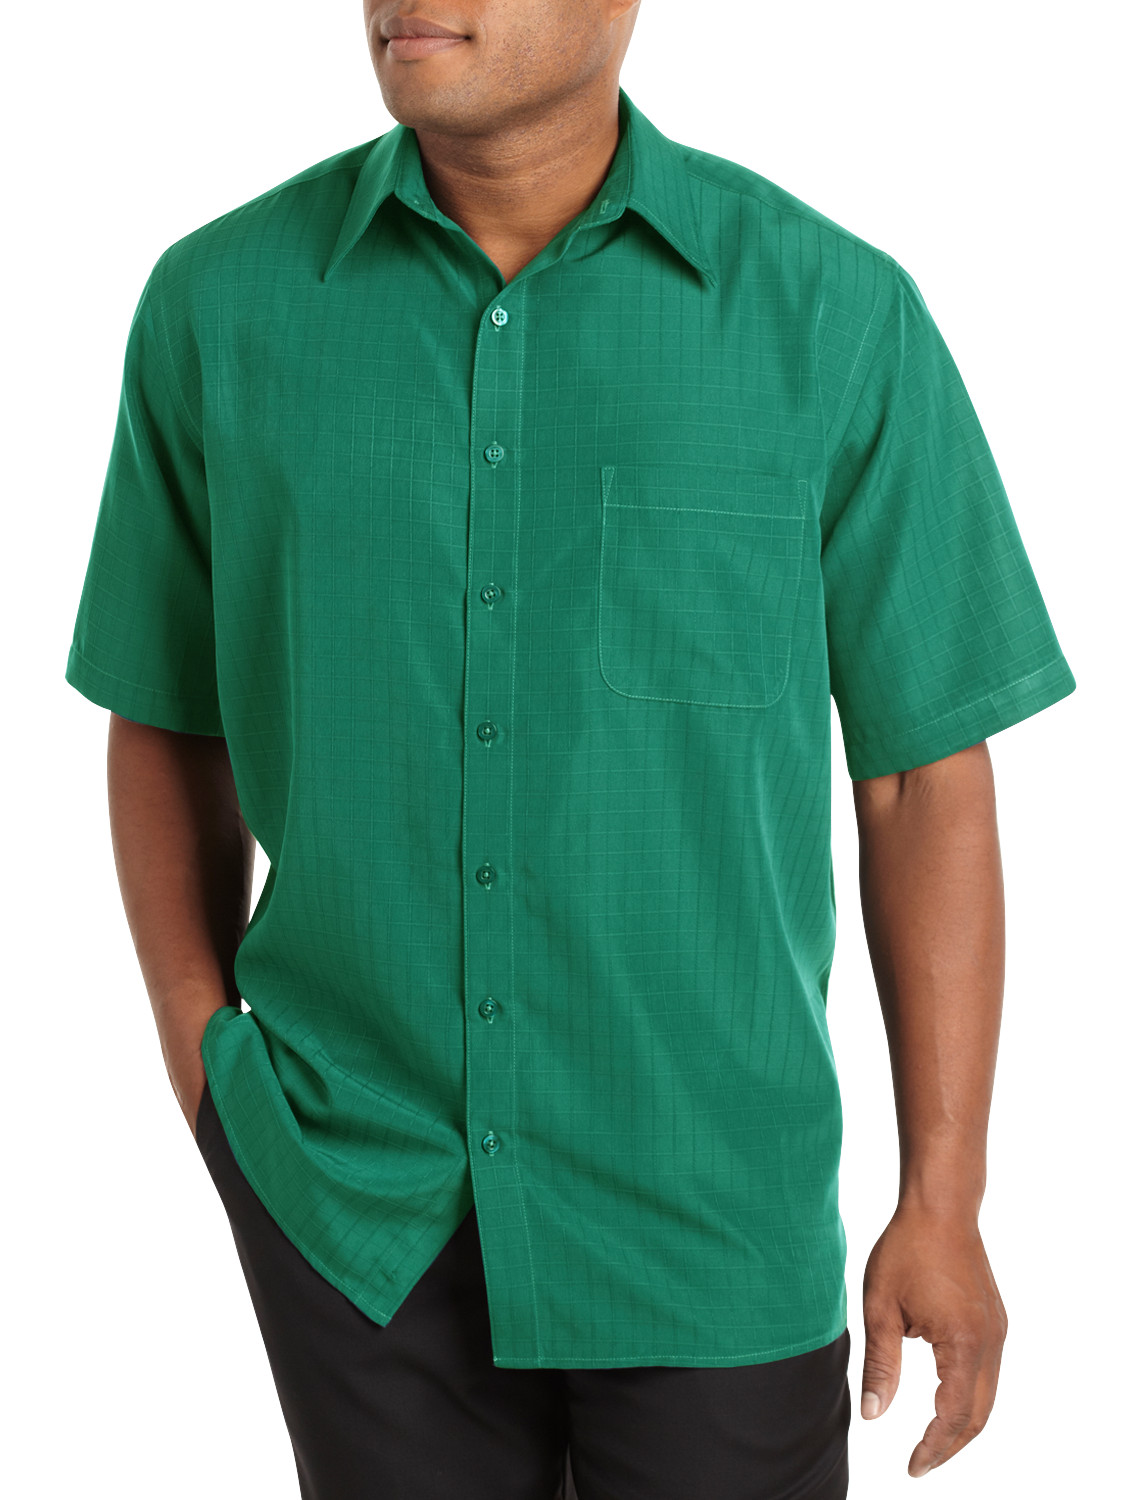 harbor bay short sleeve microfiber sport shirt casual male